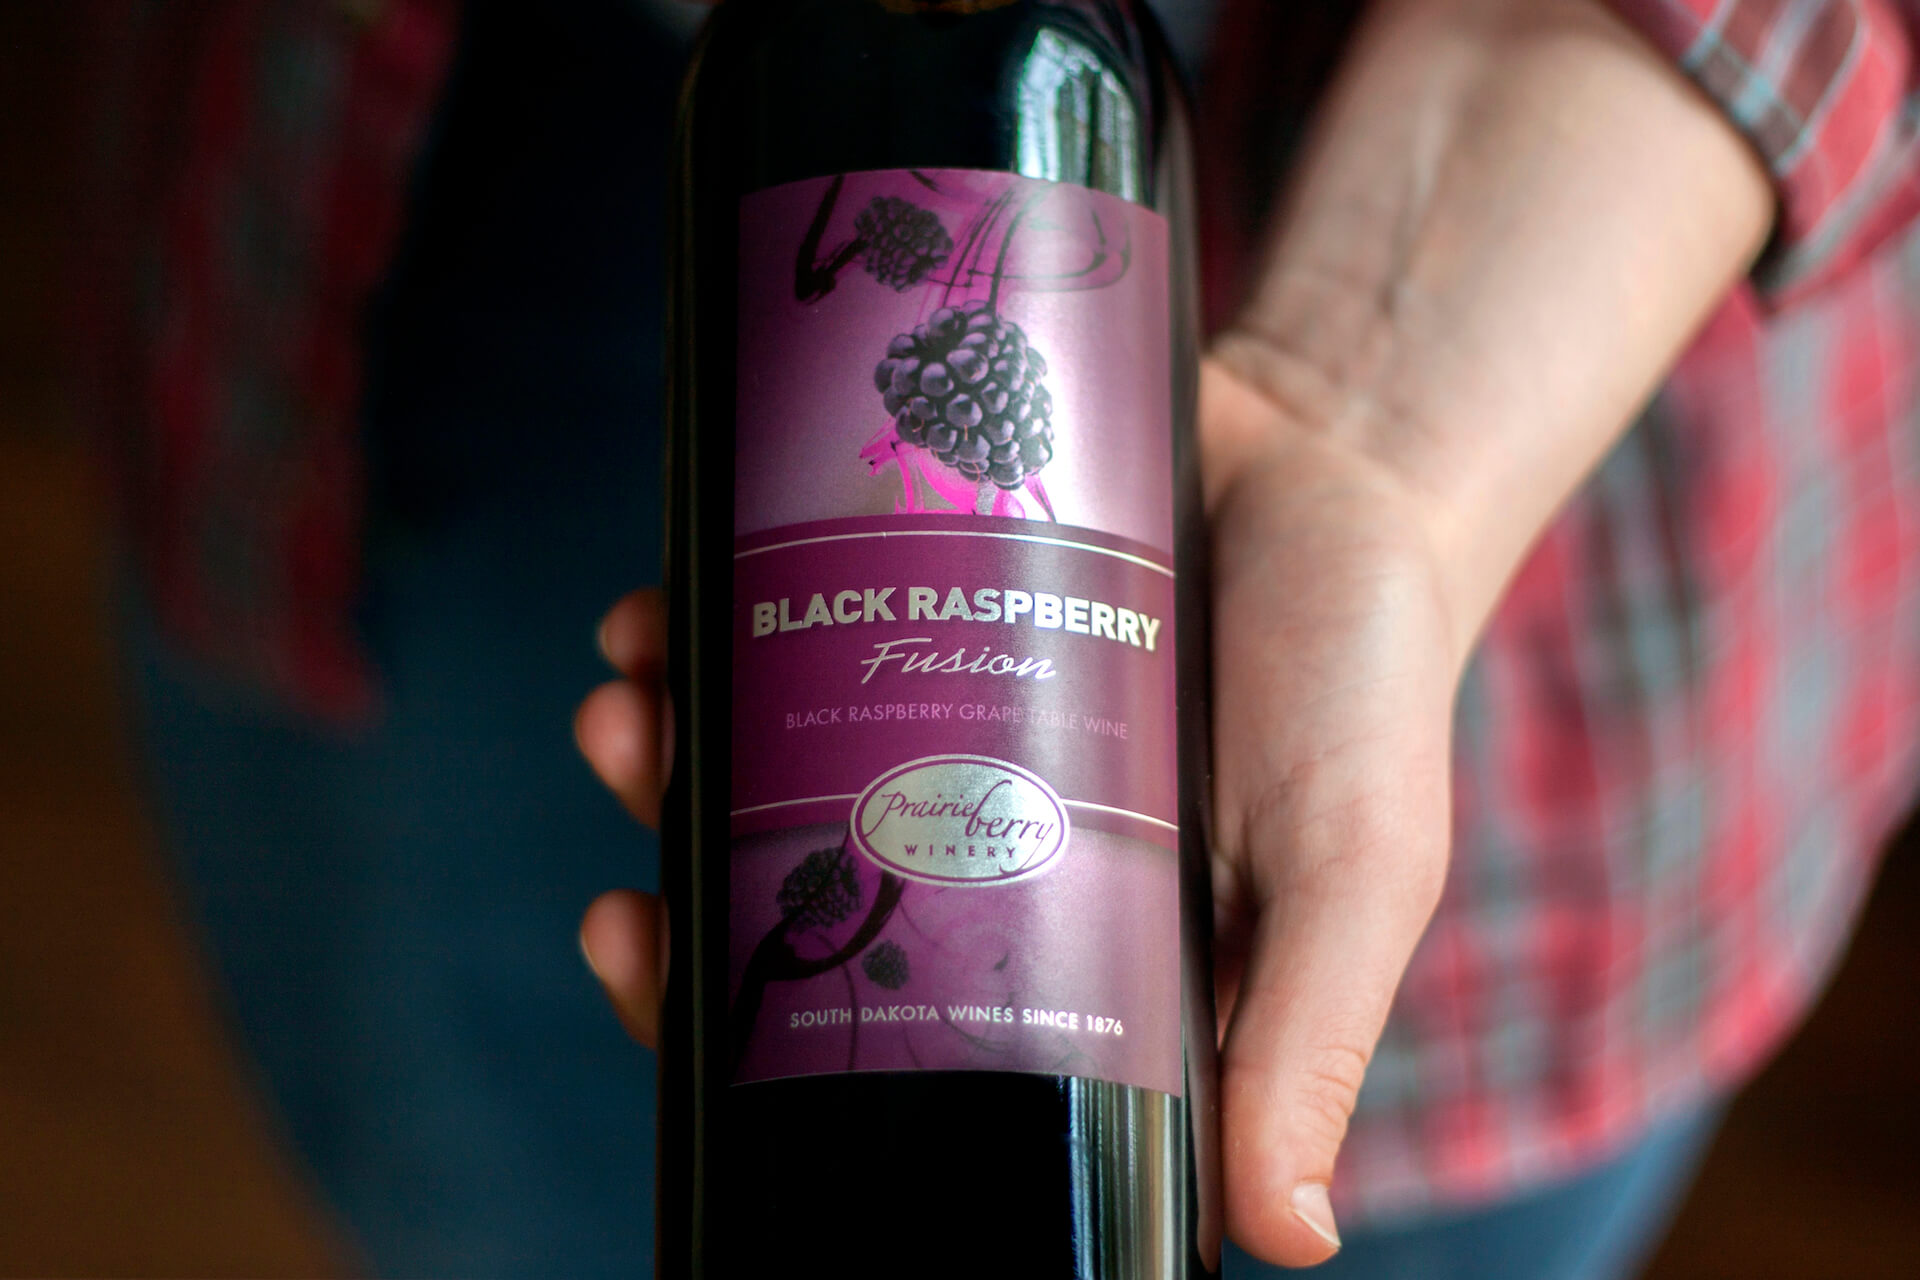 Hand holding a bottle of Prairie Berry Winery's Black Raspberry Fusion